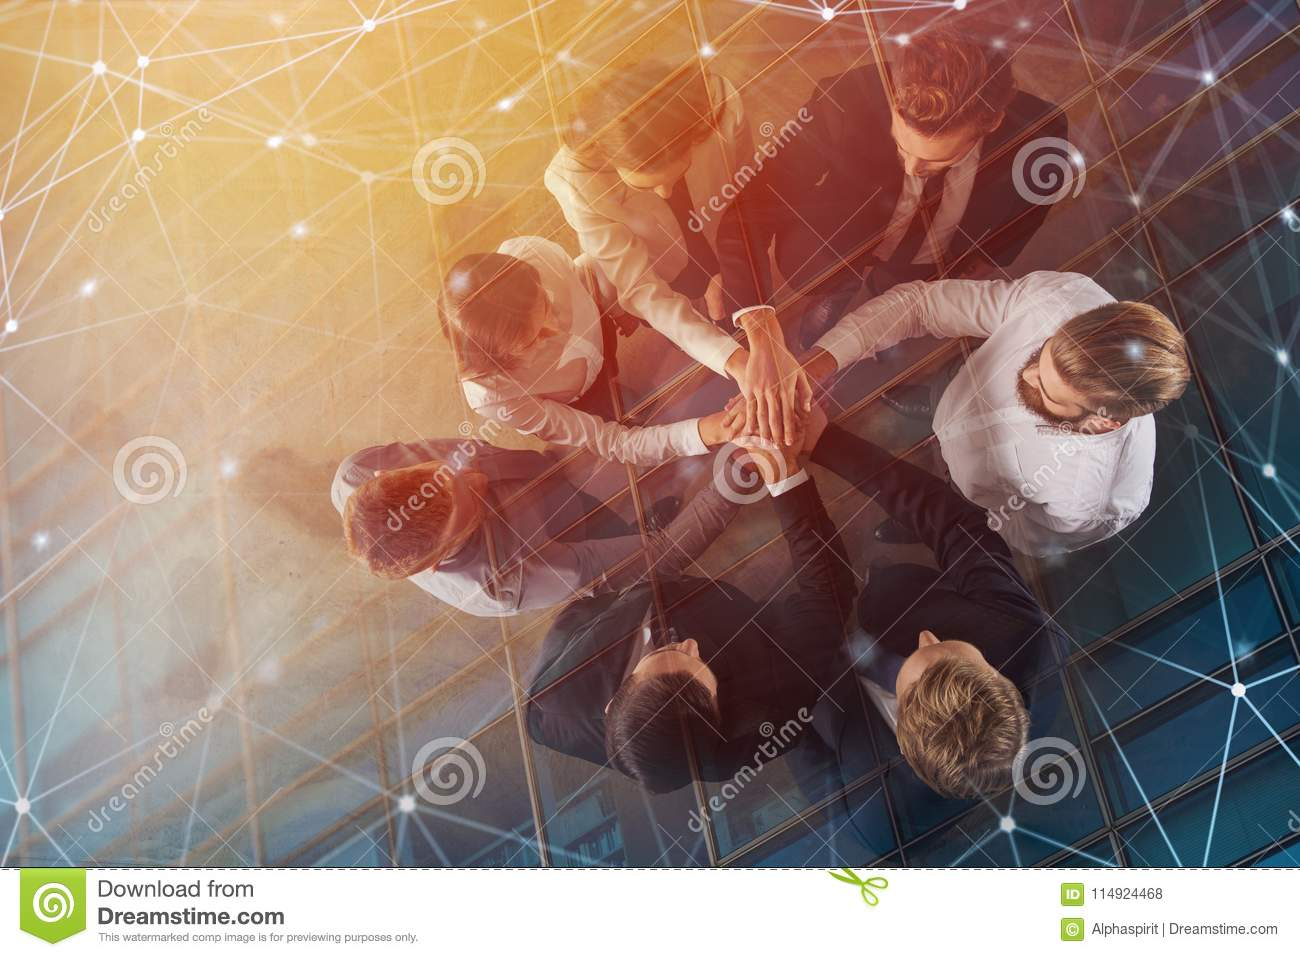 Business people putting their hands together with internet network effects. Concept of integration, teamwork and